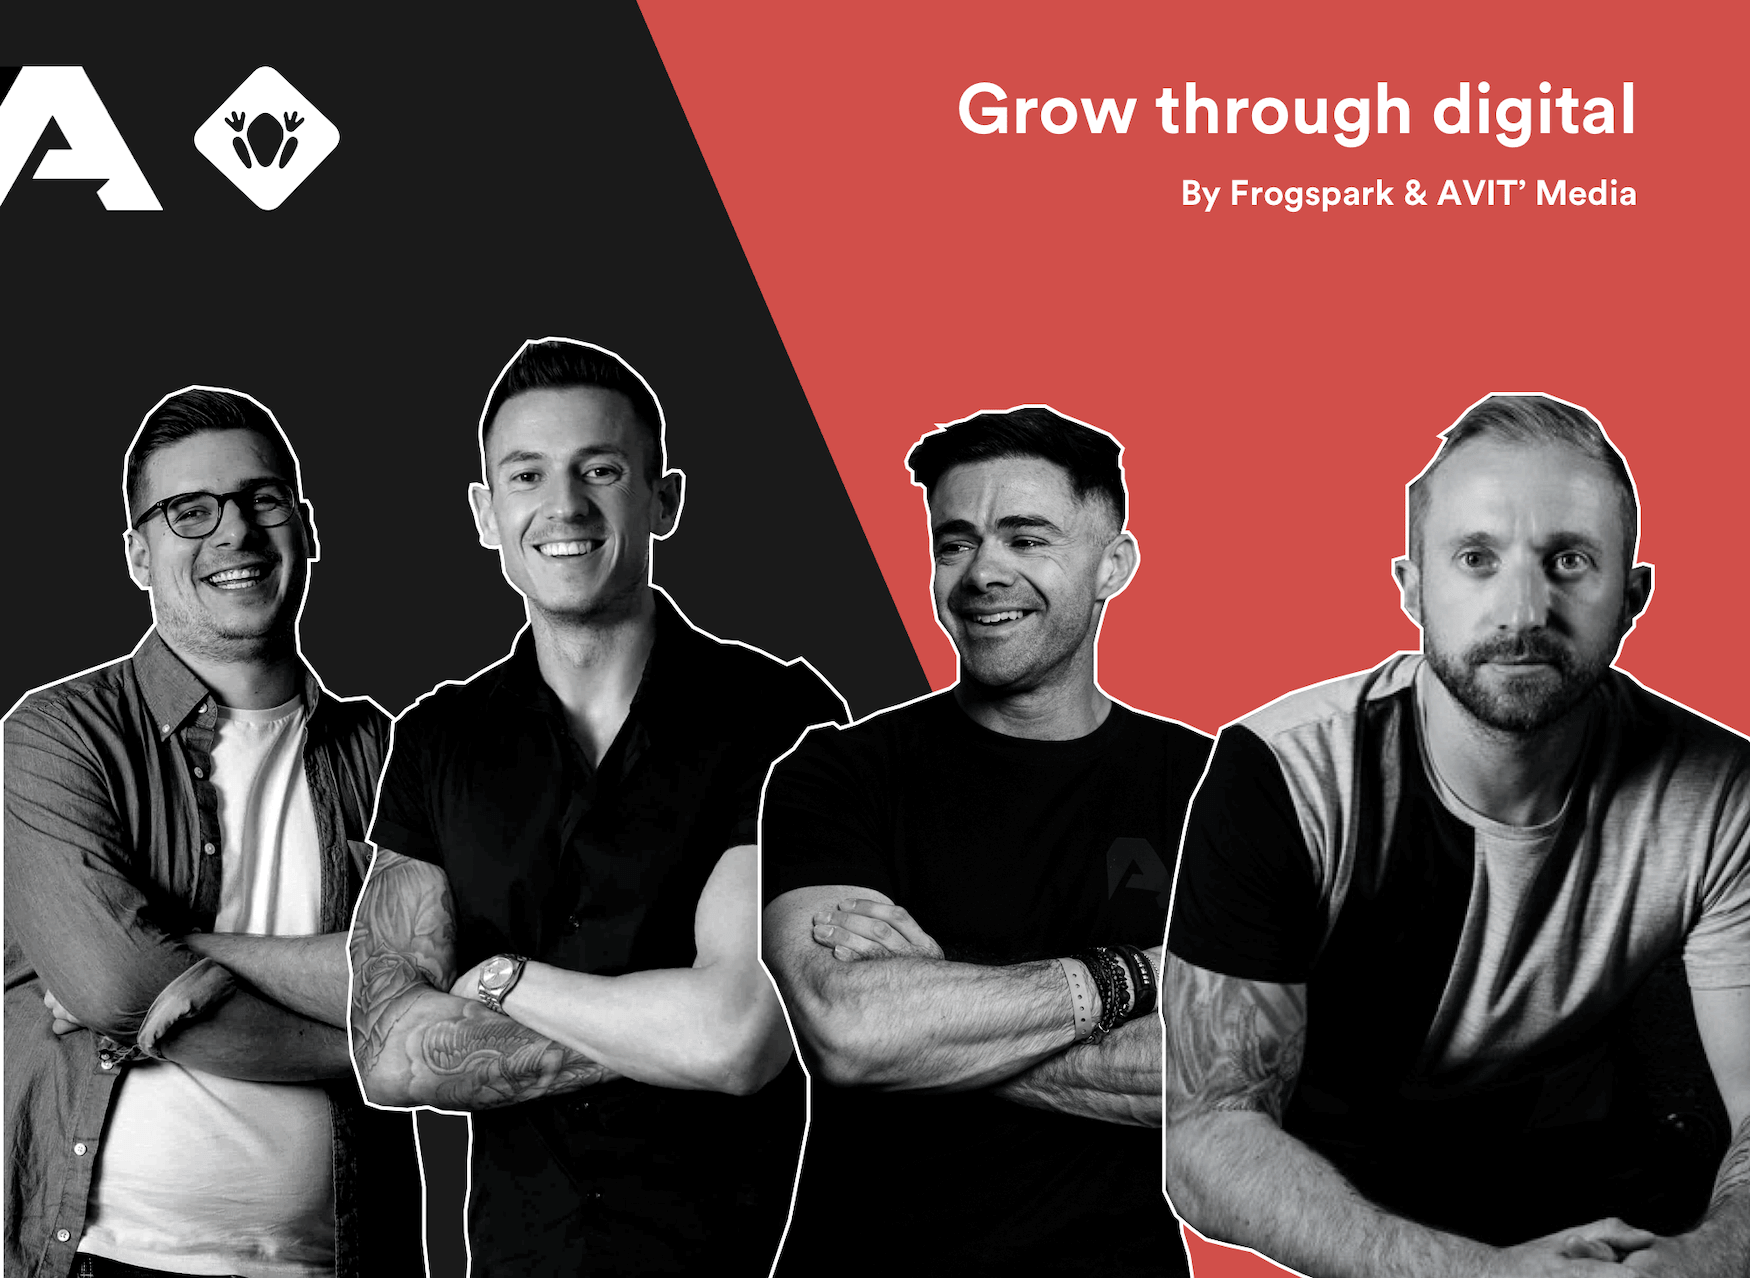 Grow Through Digital Event by Frogspark & AVIT Media